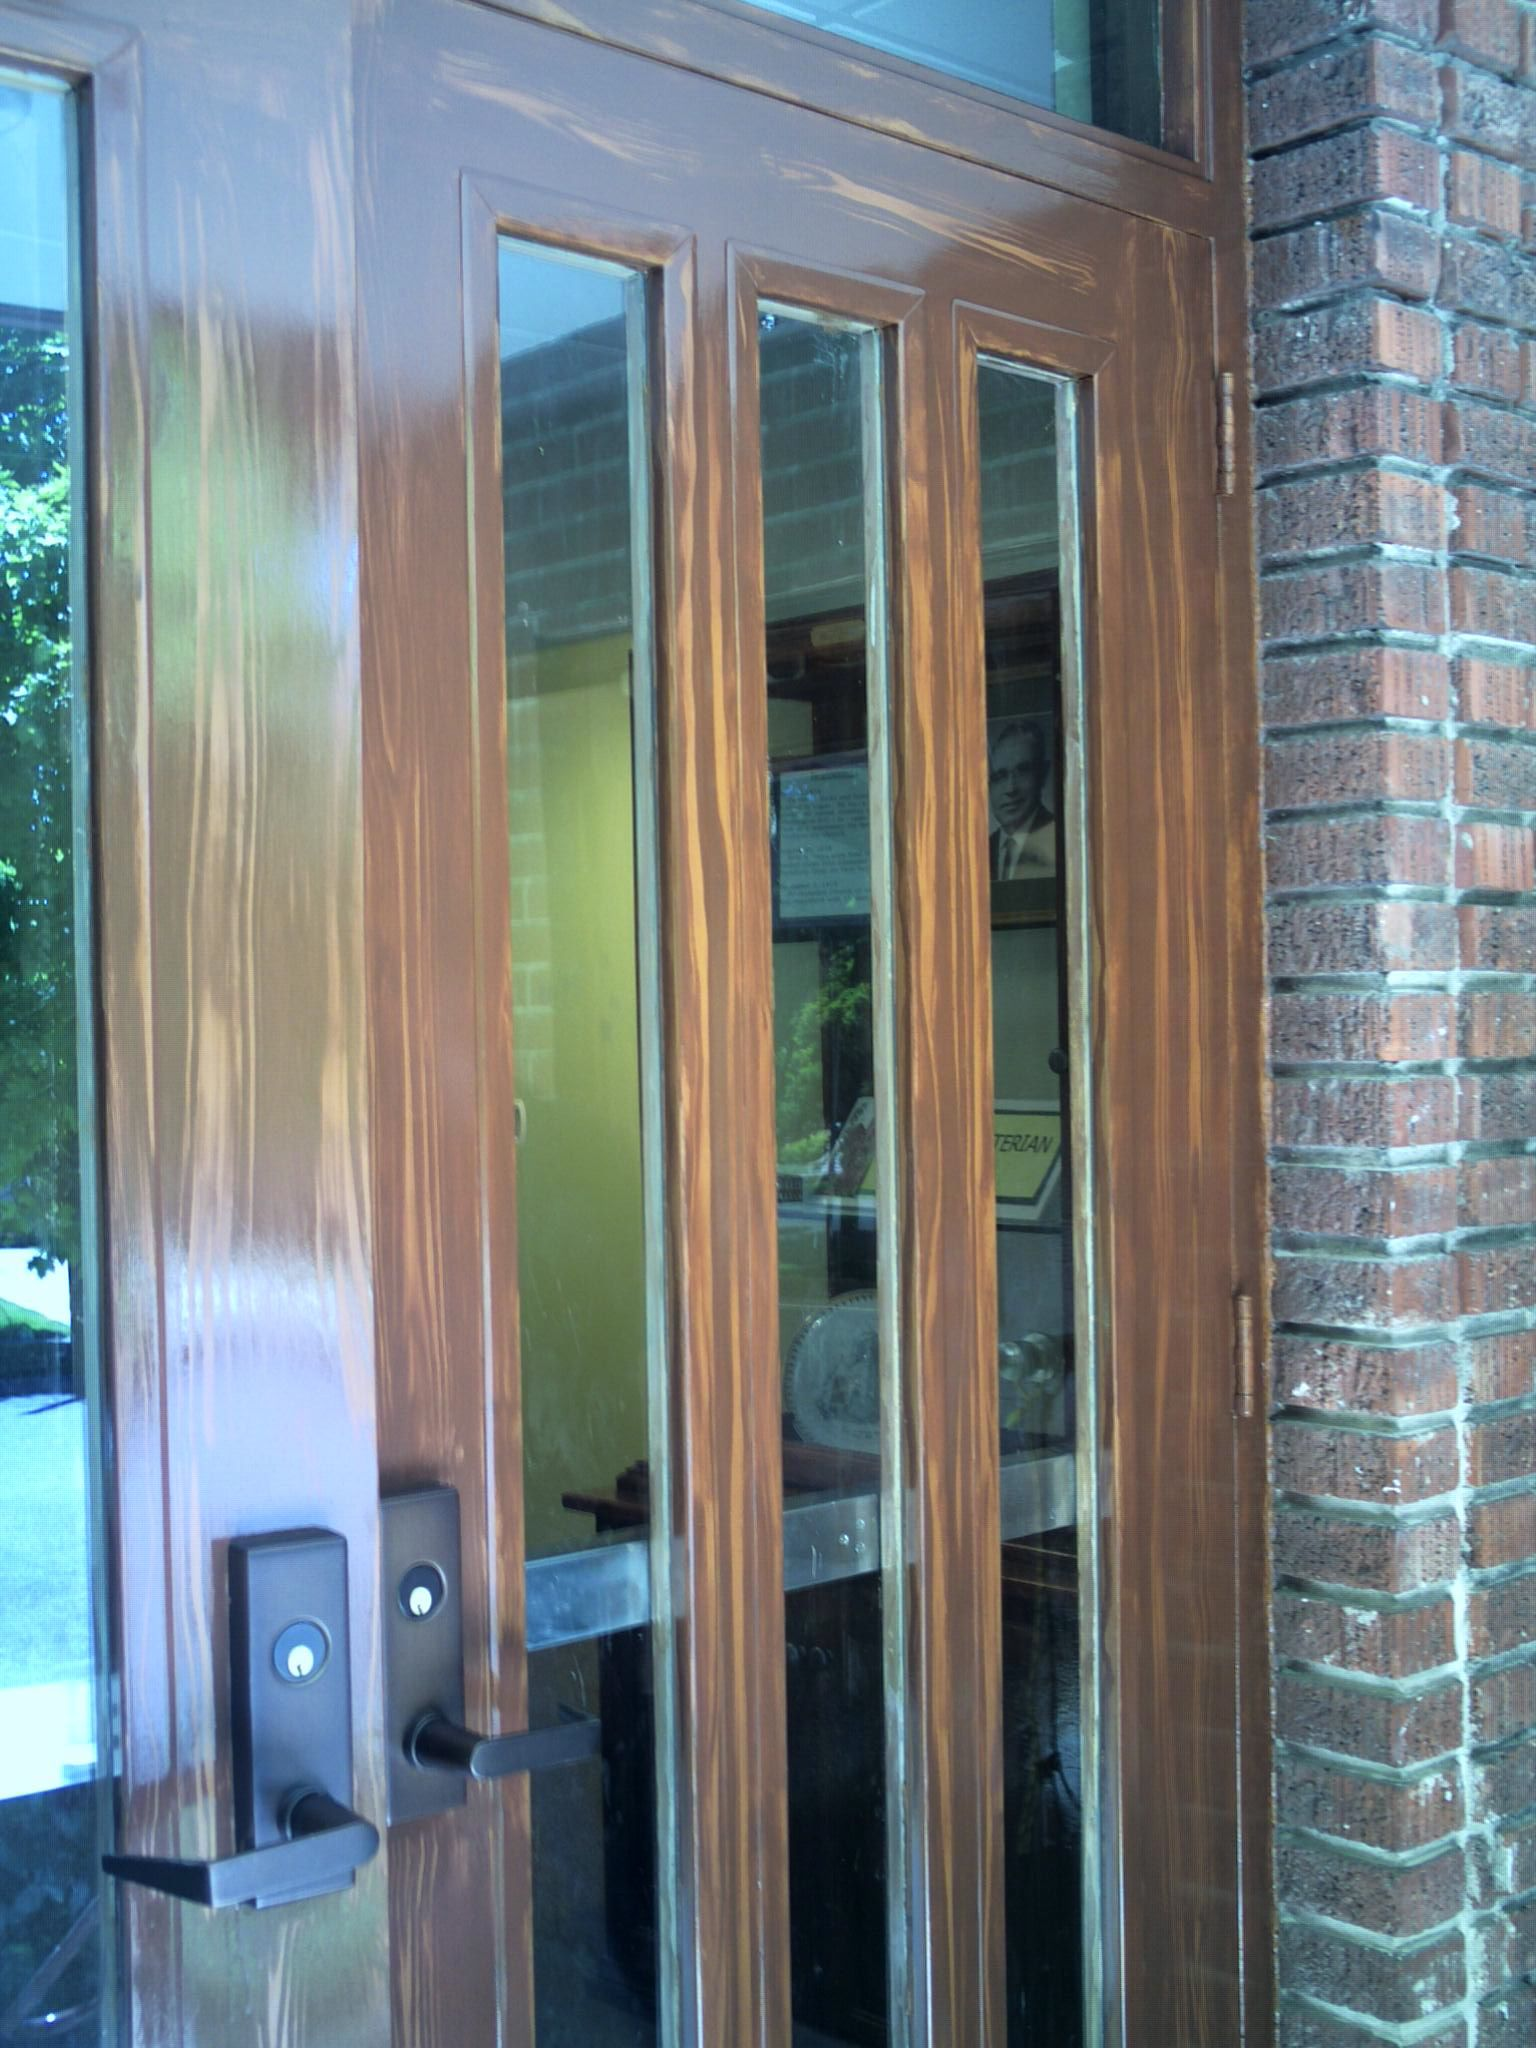 2048 3a7791 exterior door before final clear coat was applied pic doors commercial 46911536